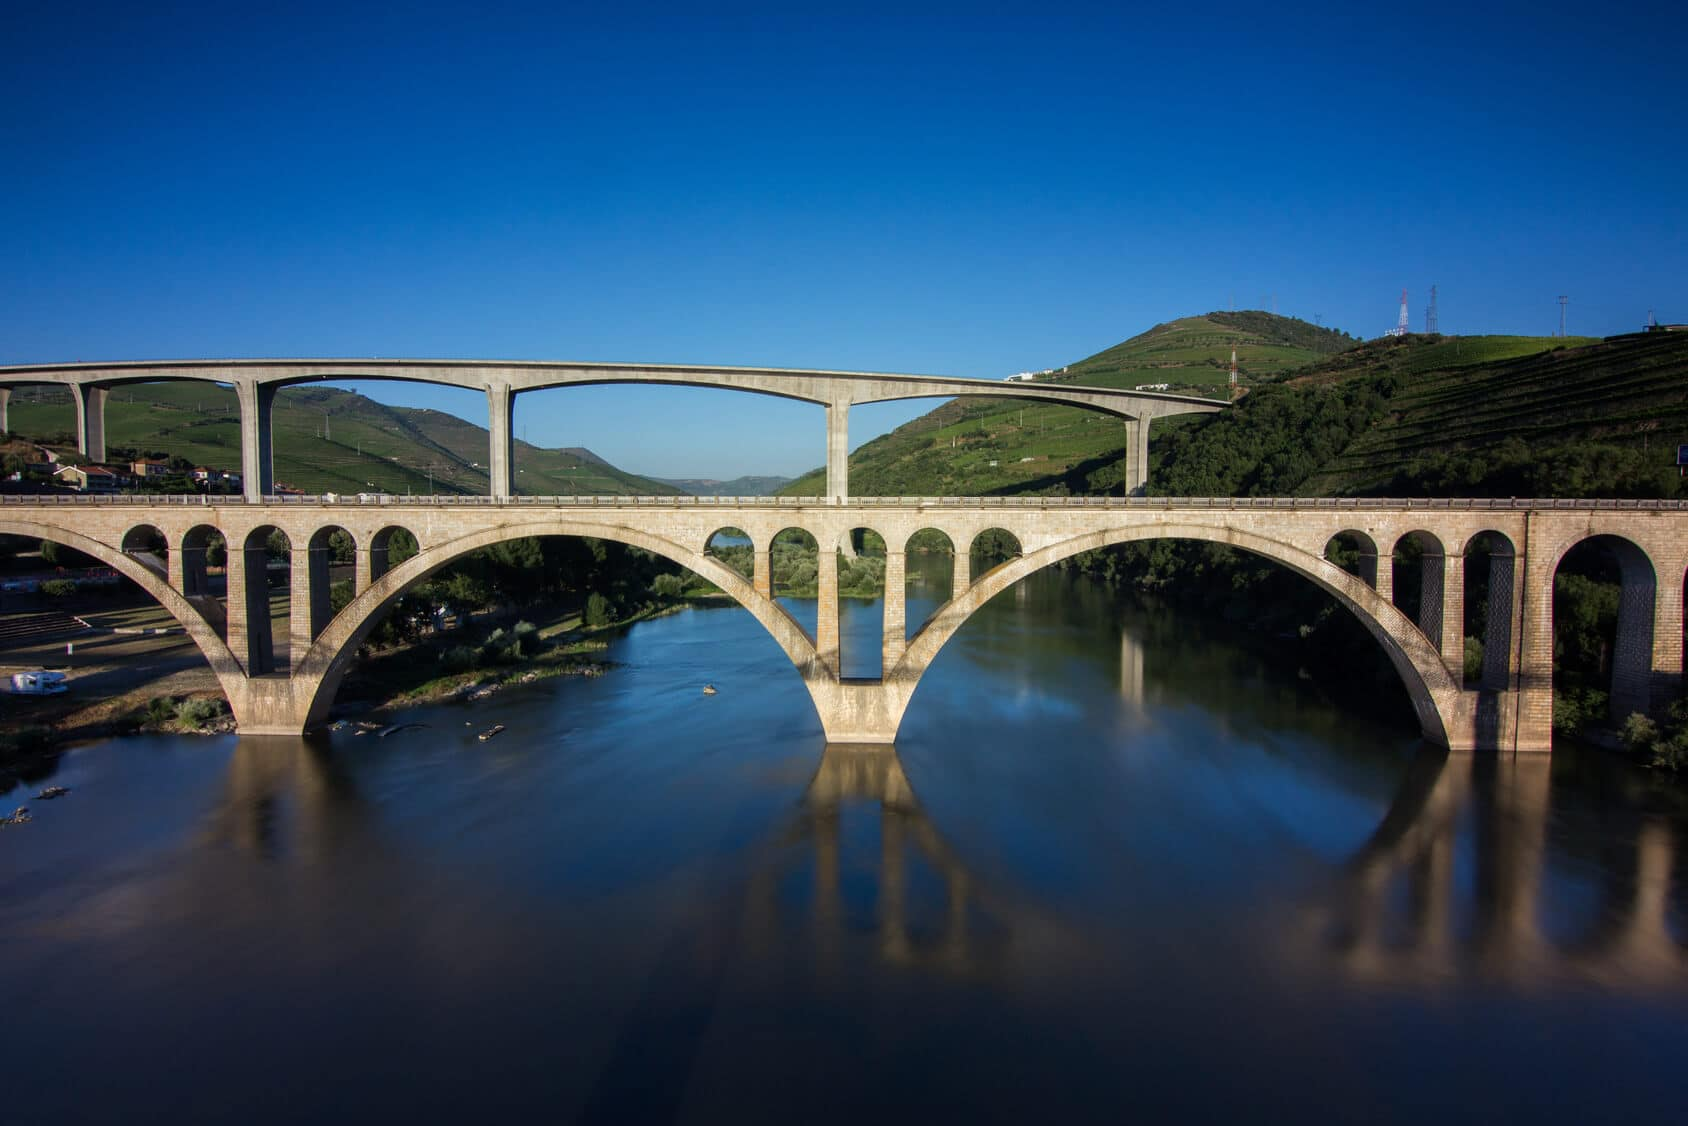 Bridges of Douro Valley